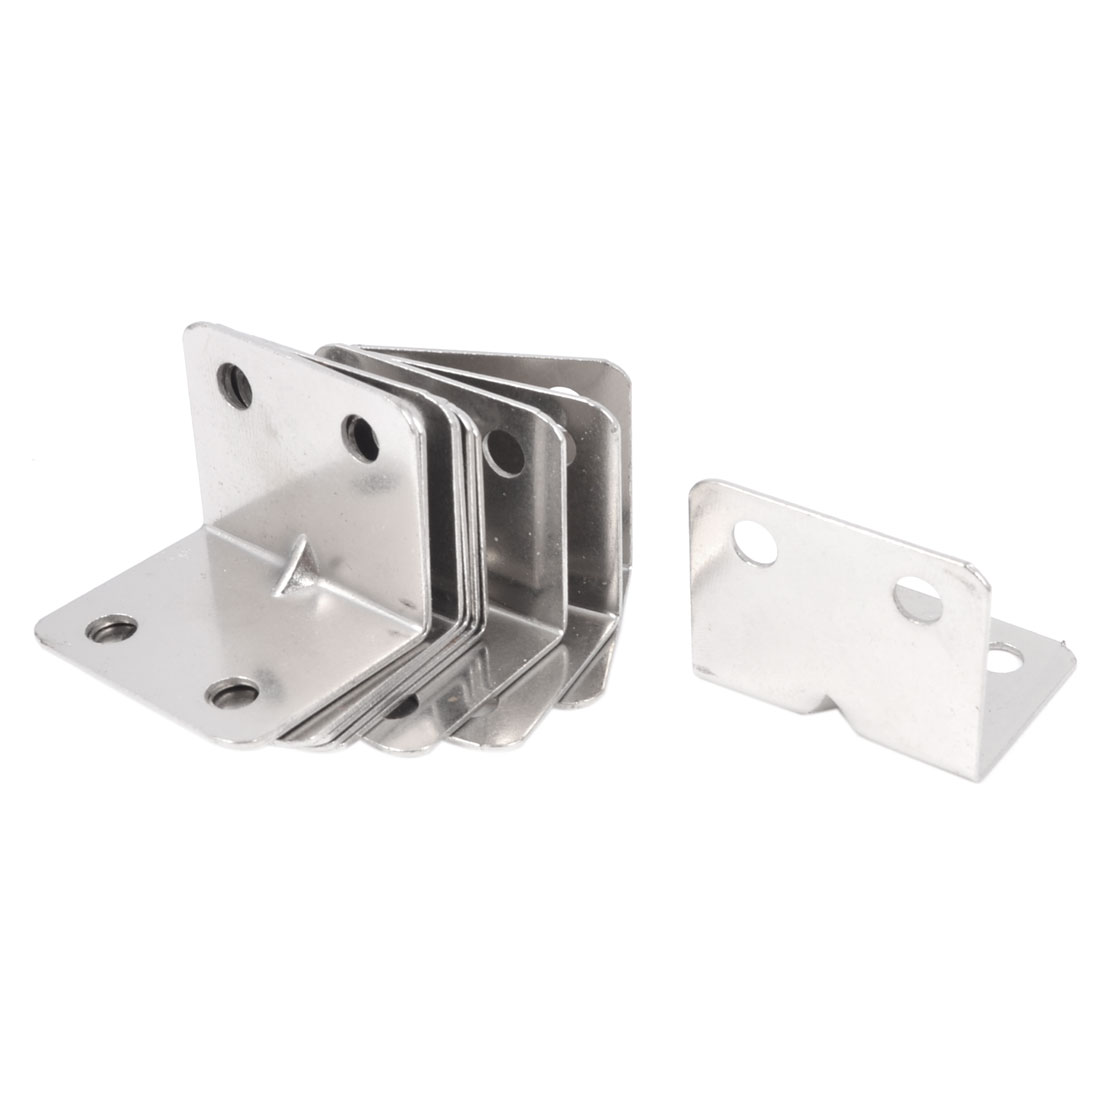 Shelf Door 32mm x 25mm 90 Degree 4 Mount Holes Angle Brackets 10 Pcs